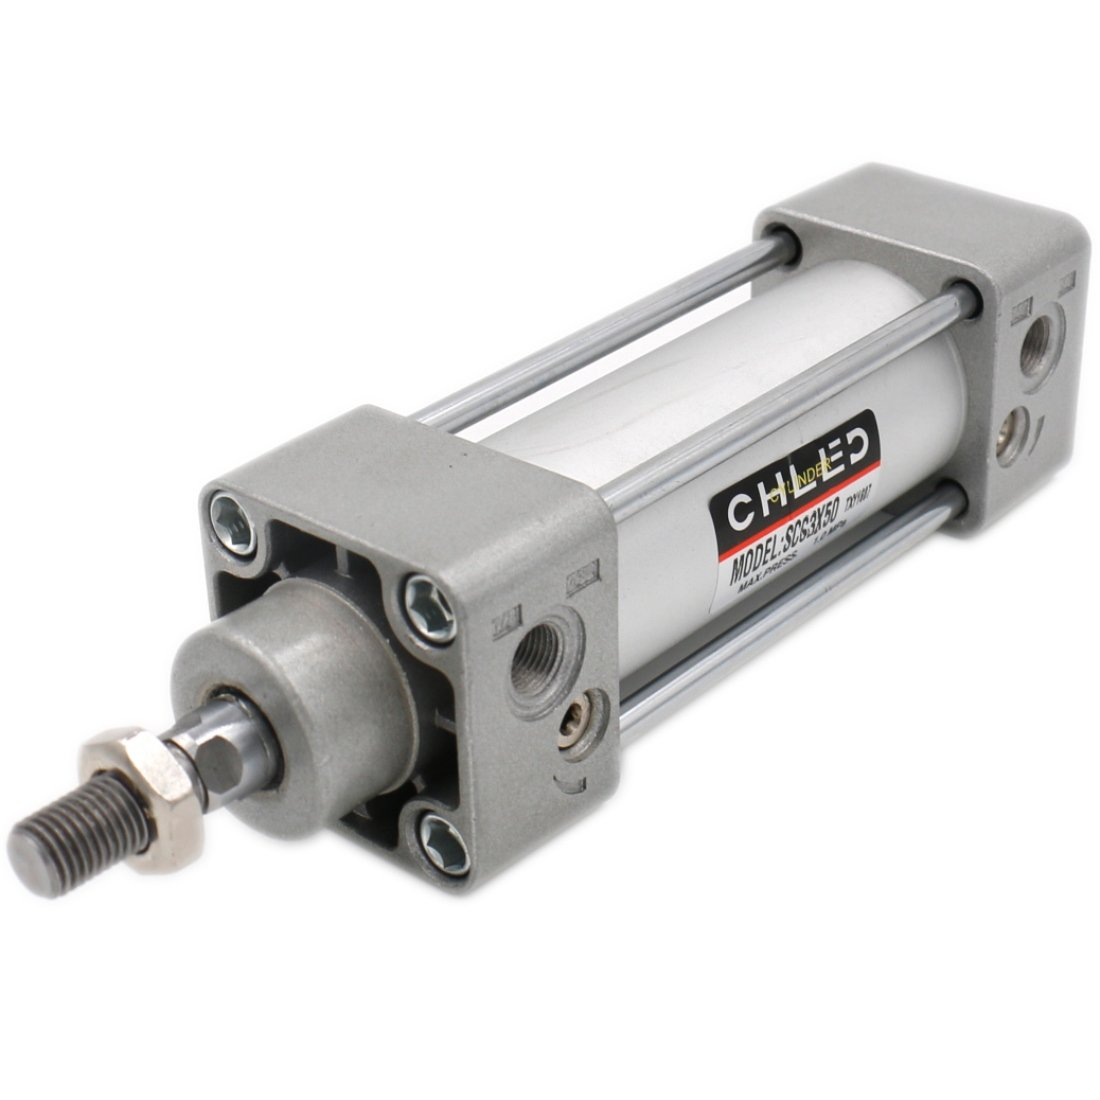 Baomain Pneumatic Air Cylinder SC 63 X 50 PT3/8, Bore: 2 1/2 inch, Stroke: 2 inch, Screwed Piston Rod Dual Action